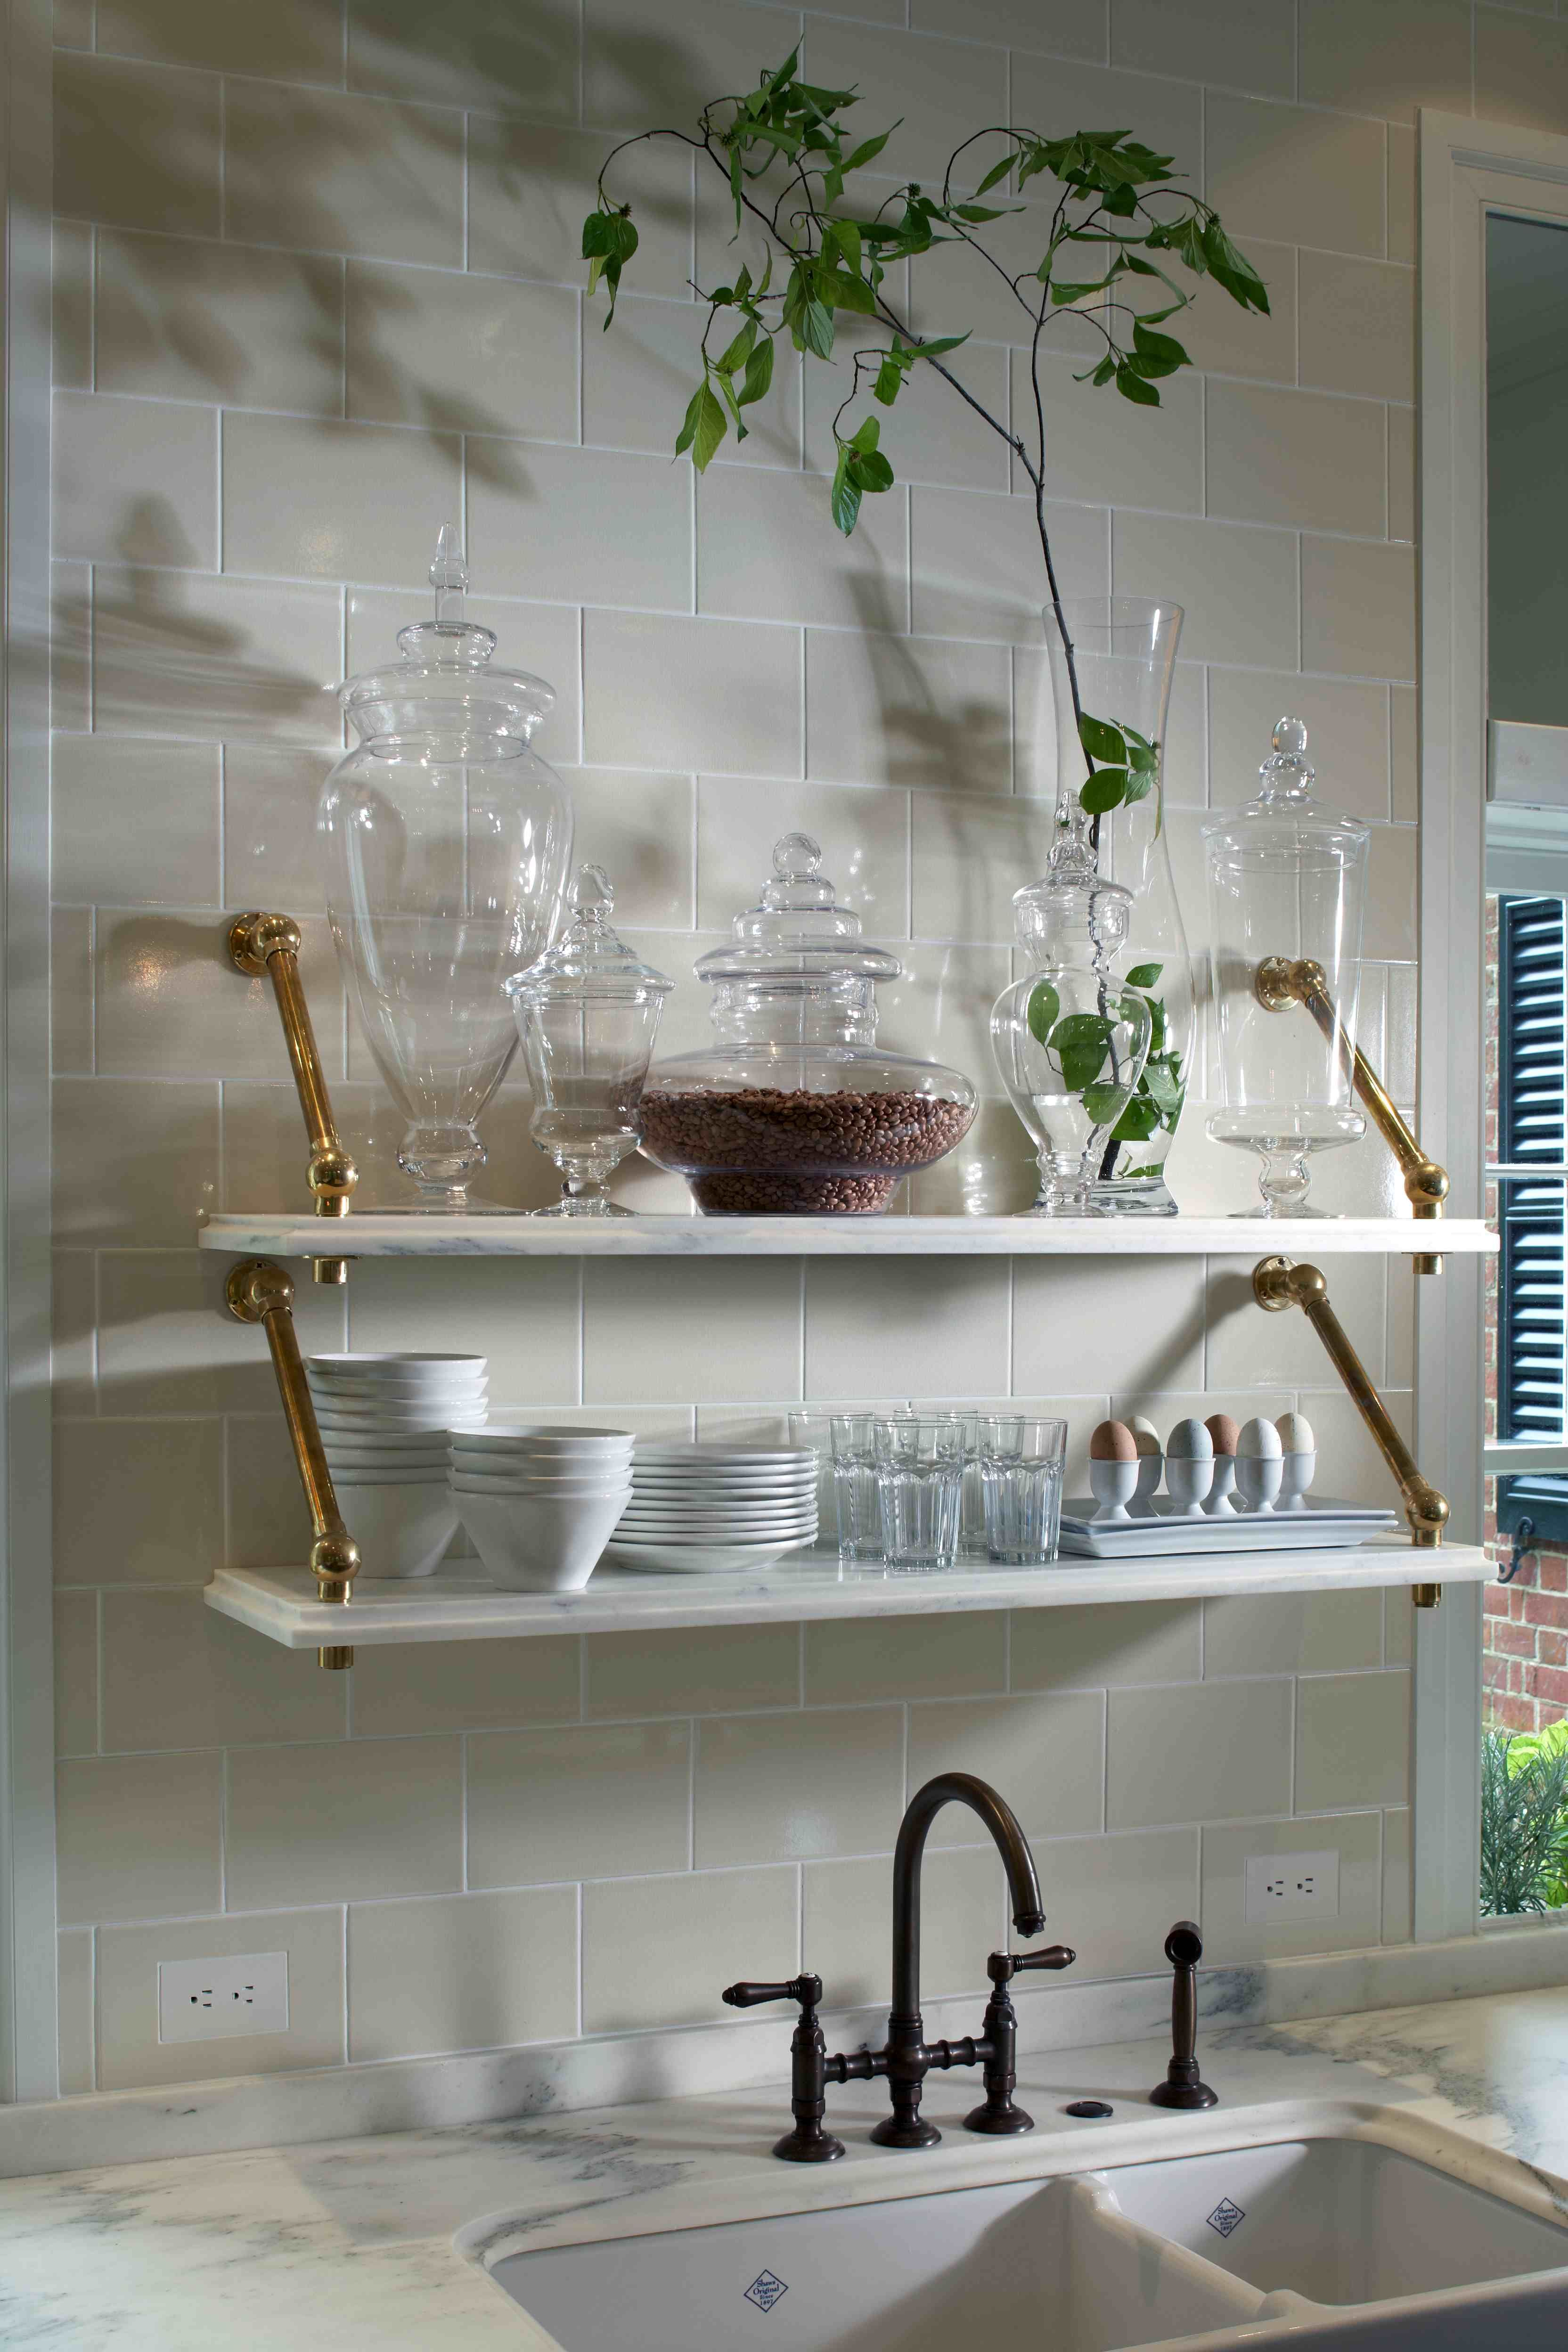 Stunning Kitchen Design With Stacked Marble Shelves With Antique